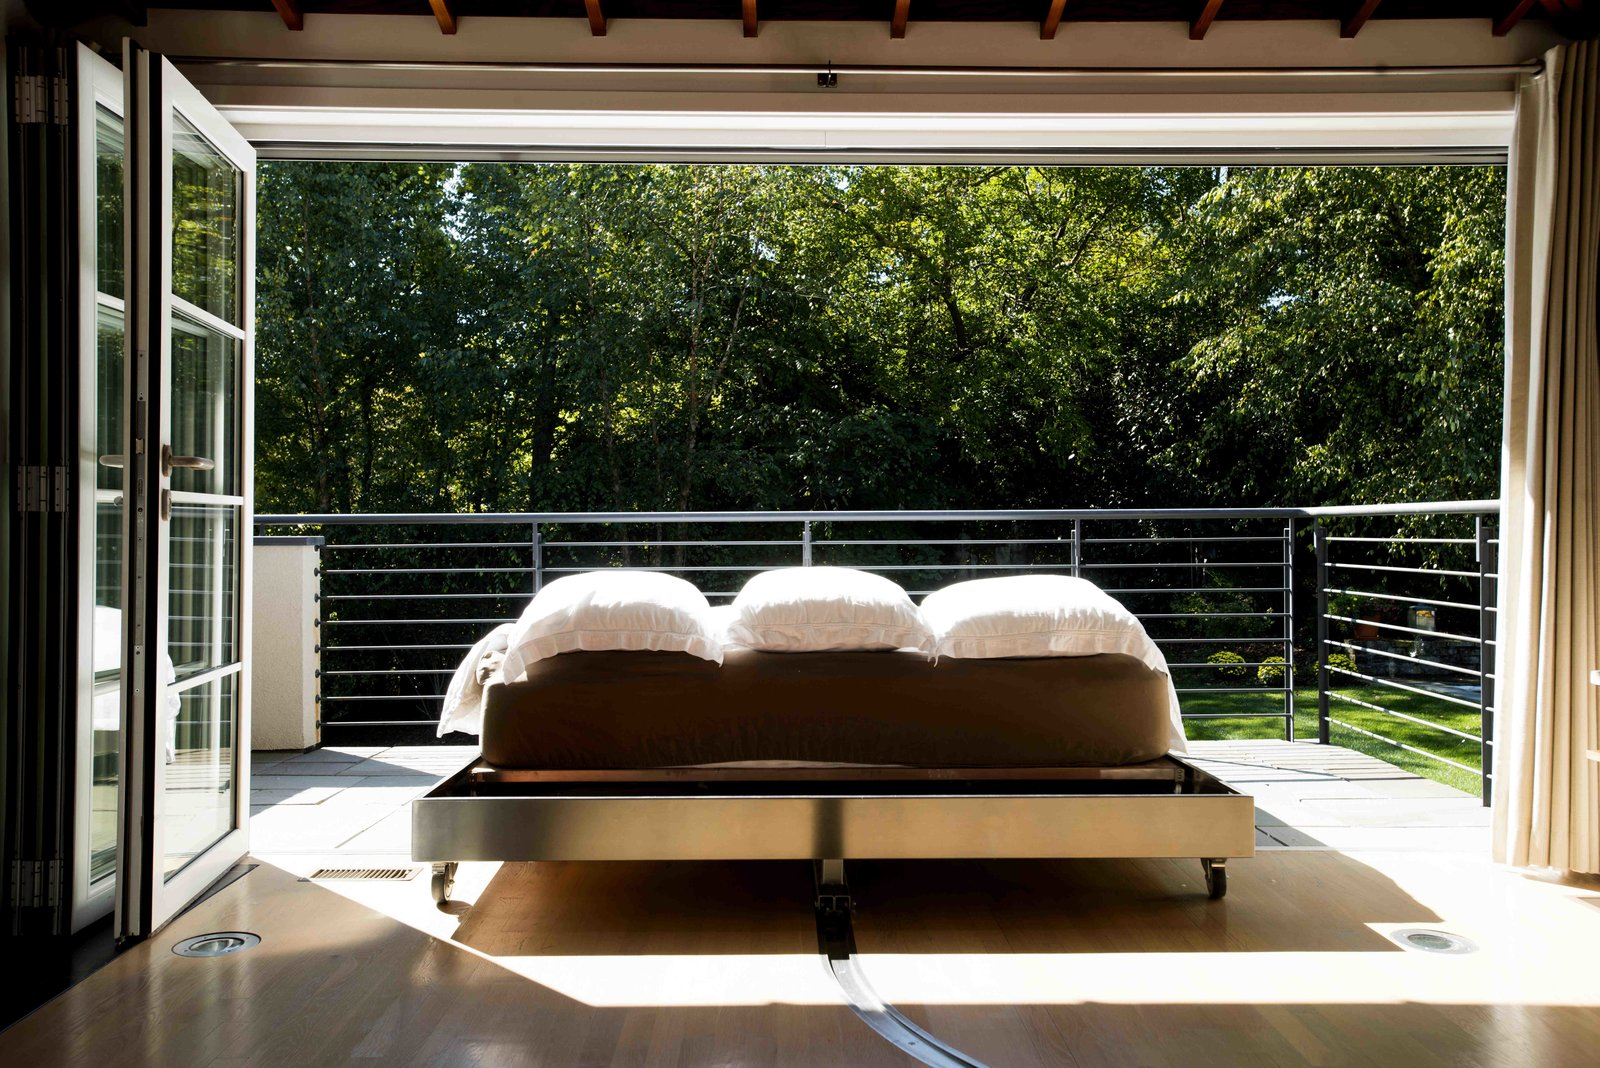 """When the bed reaches the threshold, it slides out from the frame like a drawer so it's completely outside. """"Because there are few chances to sleep outside, due to temperature or insects or humidity, the opportunities are really special,"""" Senhauser says. """"You can't do it every couple of days—it becomes a treat.""""  The Ultimate Indoor-Outdoor Bedroom  by Diana Budds"""